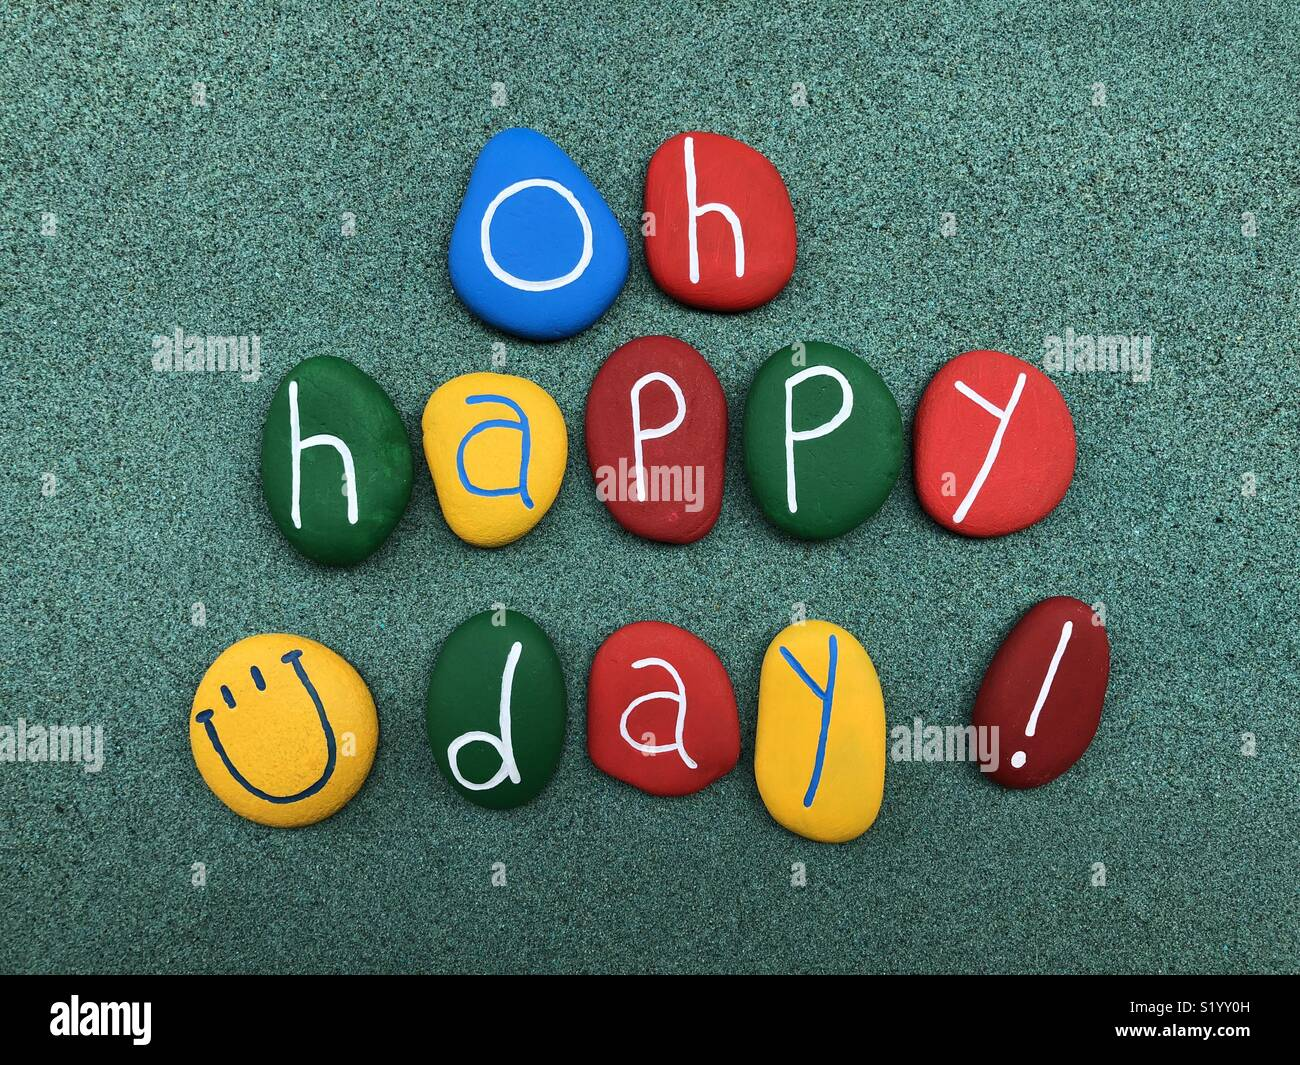 Oh Happy Day ! Stock Photo